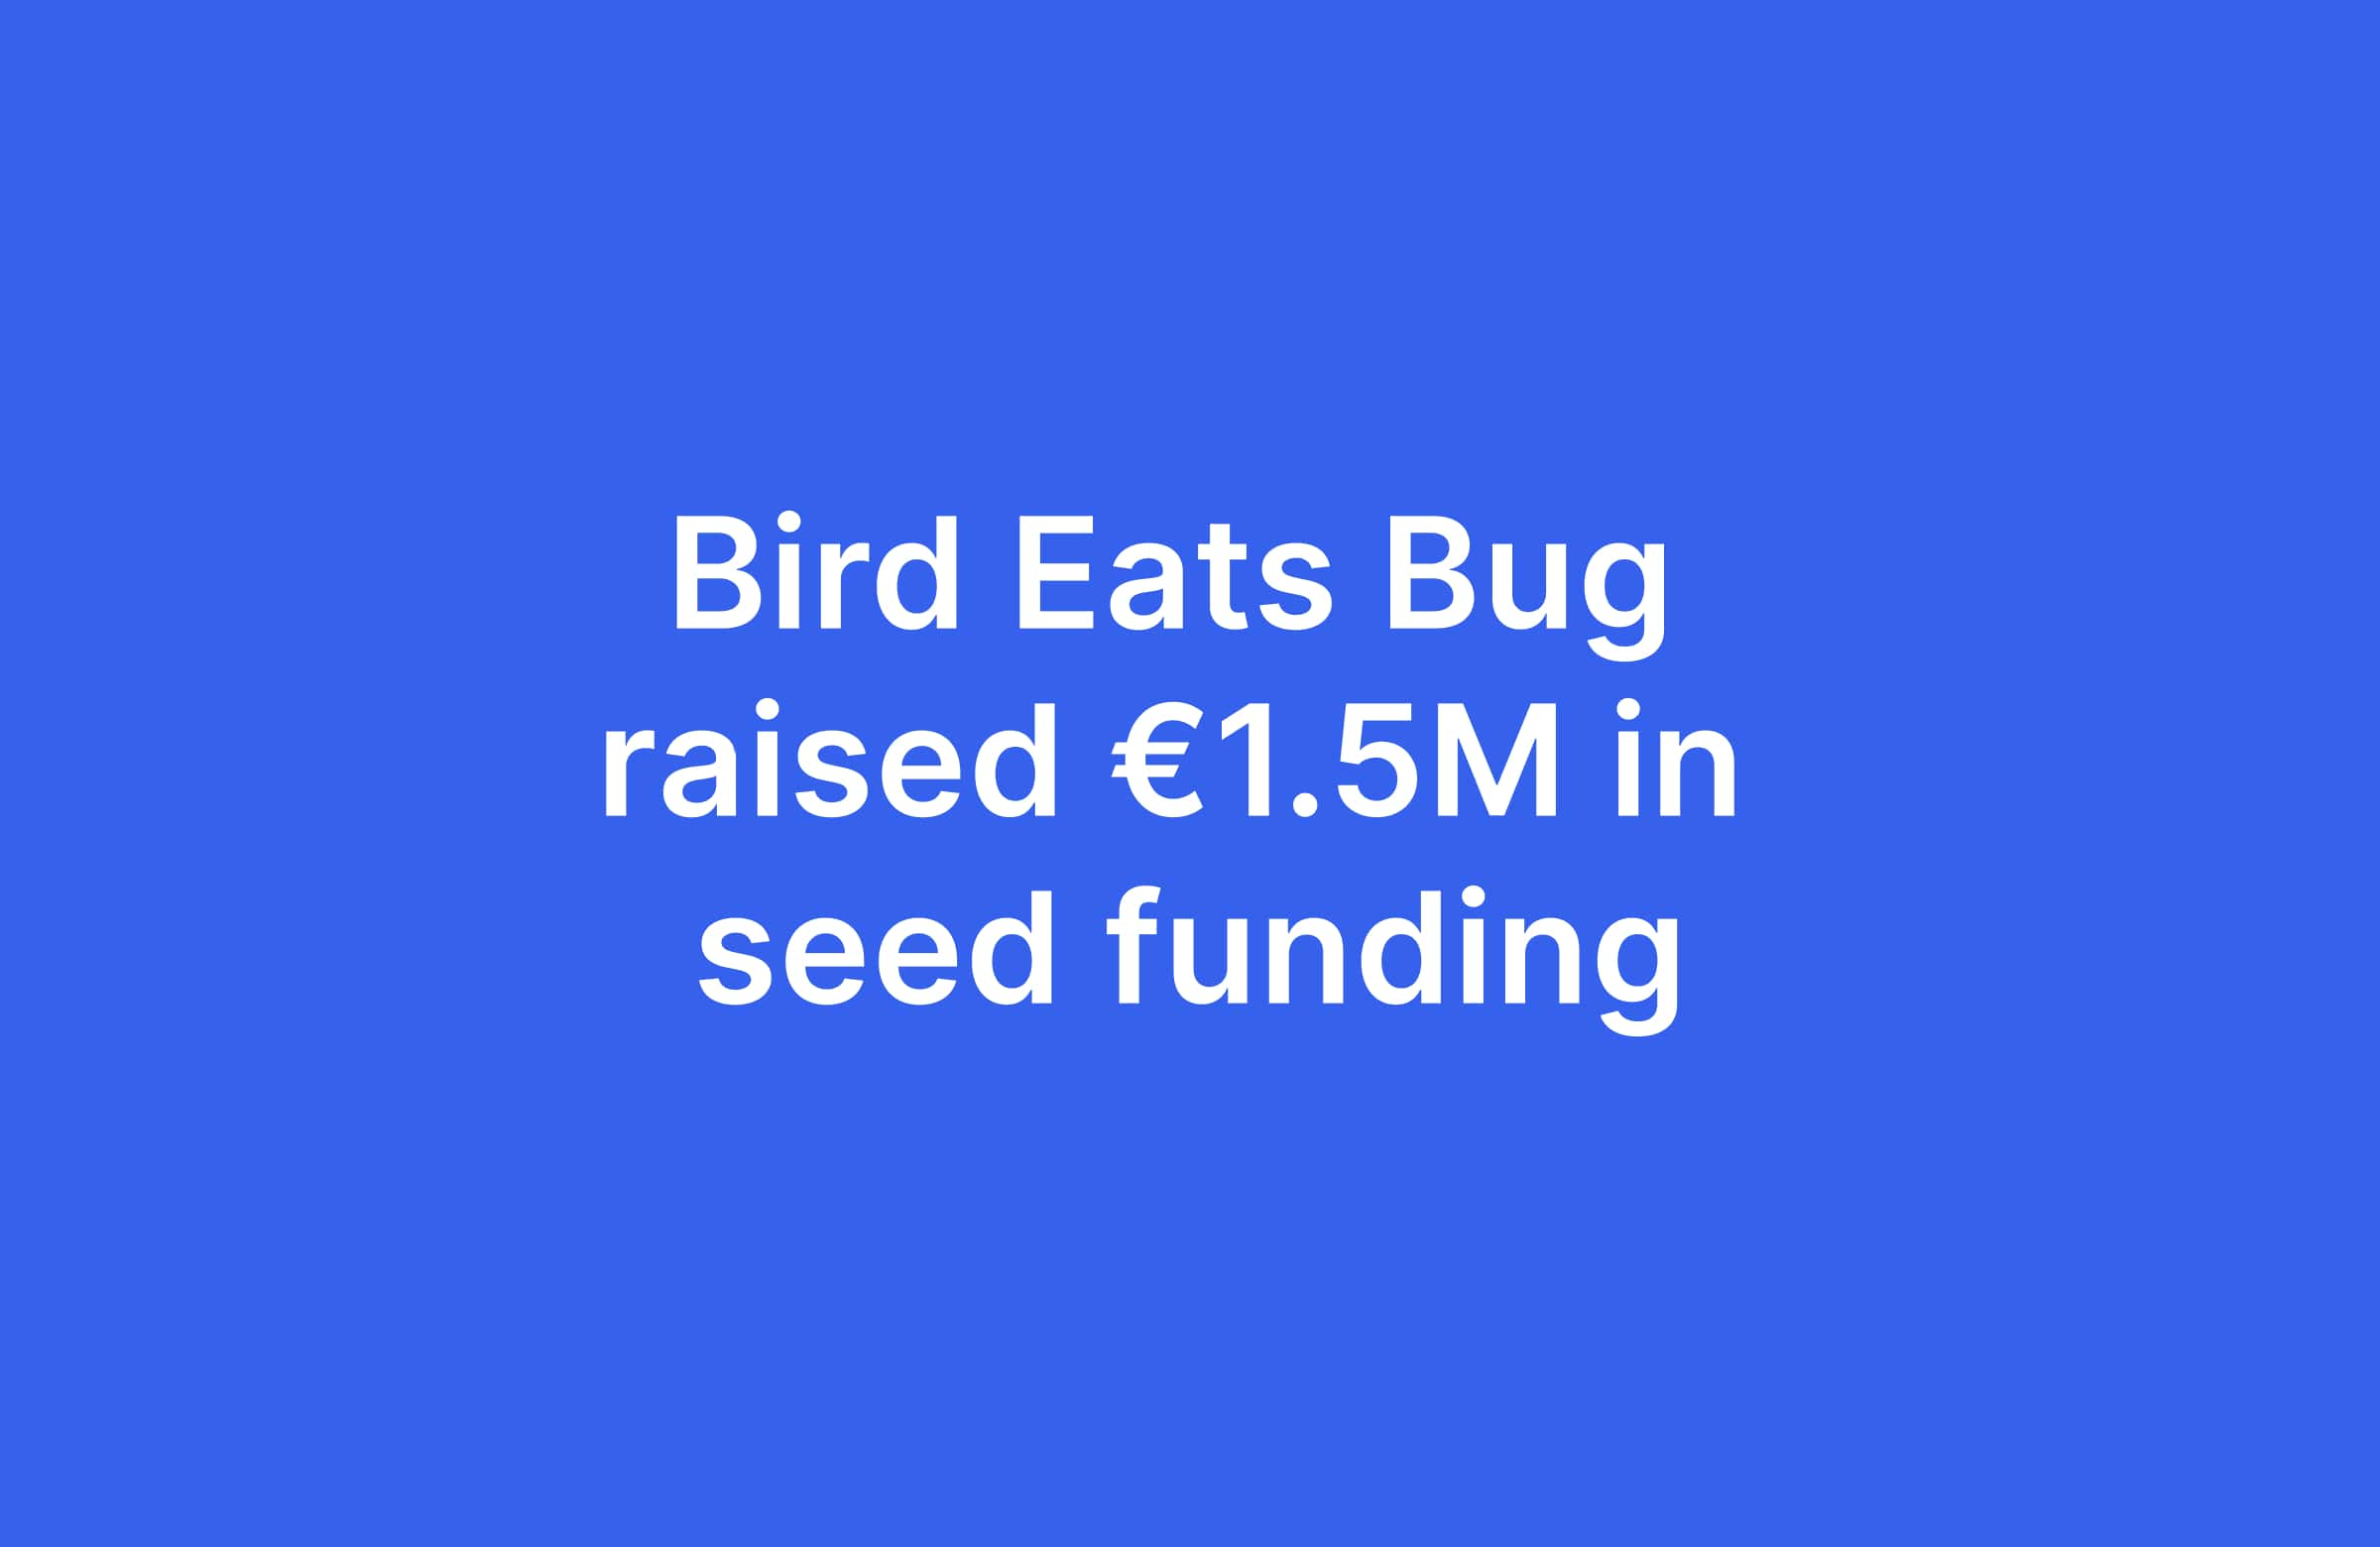 €1.5M Seed Round Raised for Time Saving Bug Tracking Tool